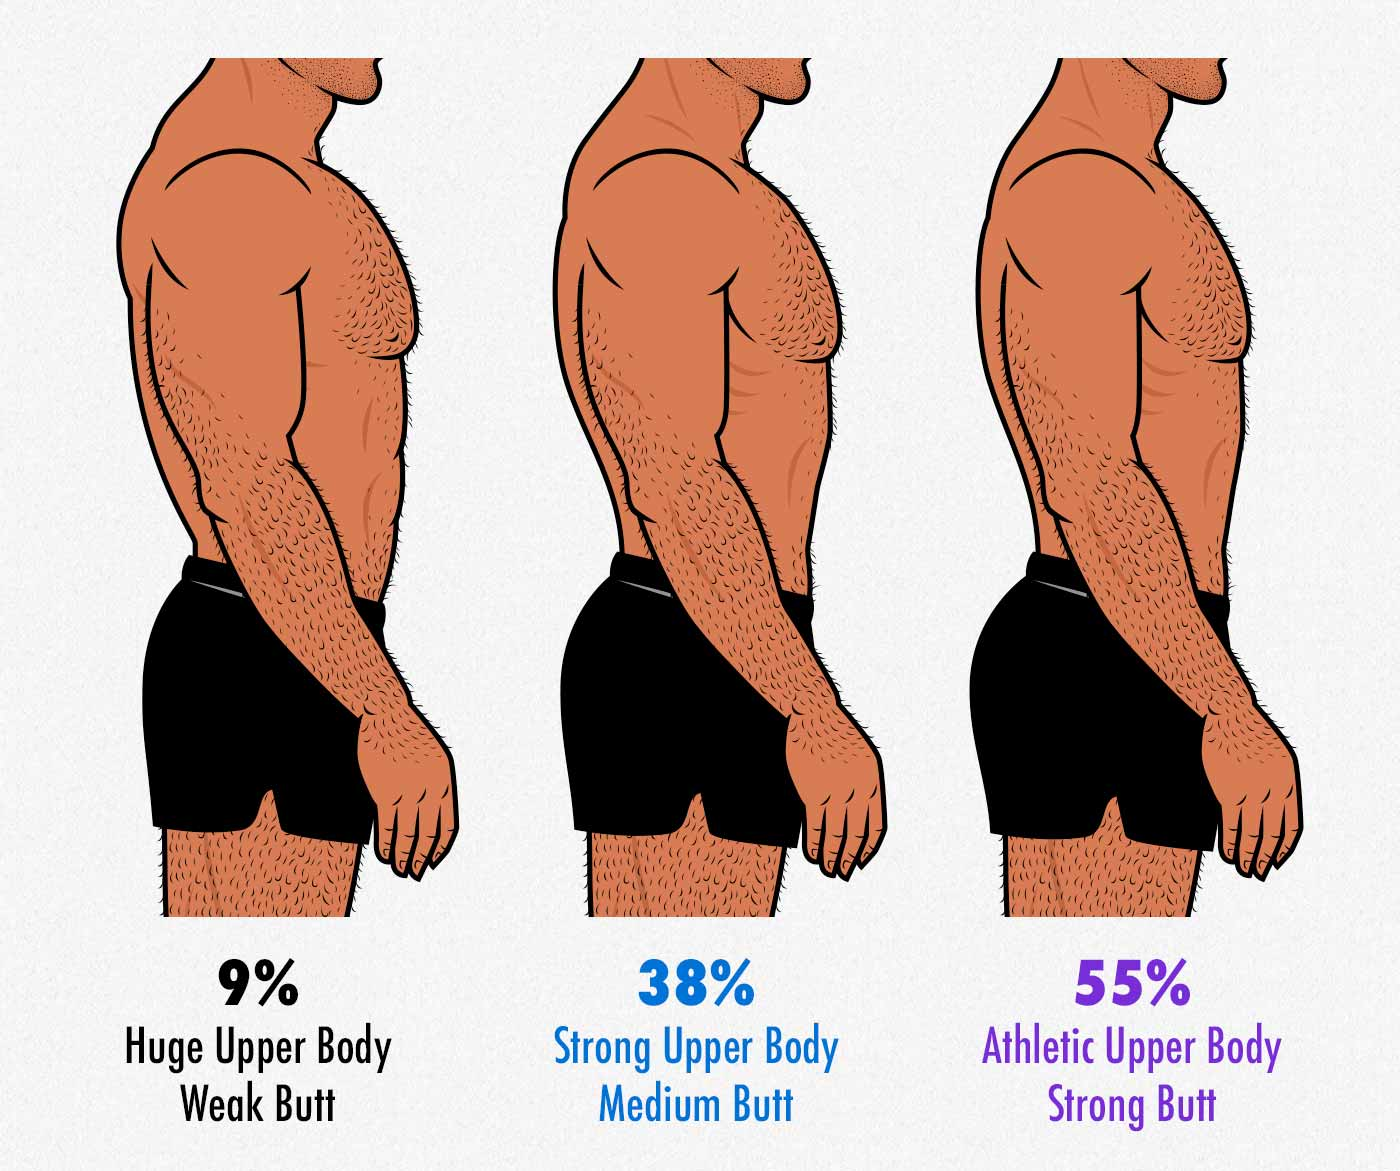 Illustration showing that women rated men with bigger butts as being more attractive.